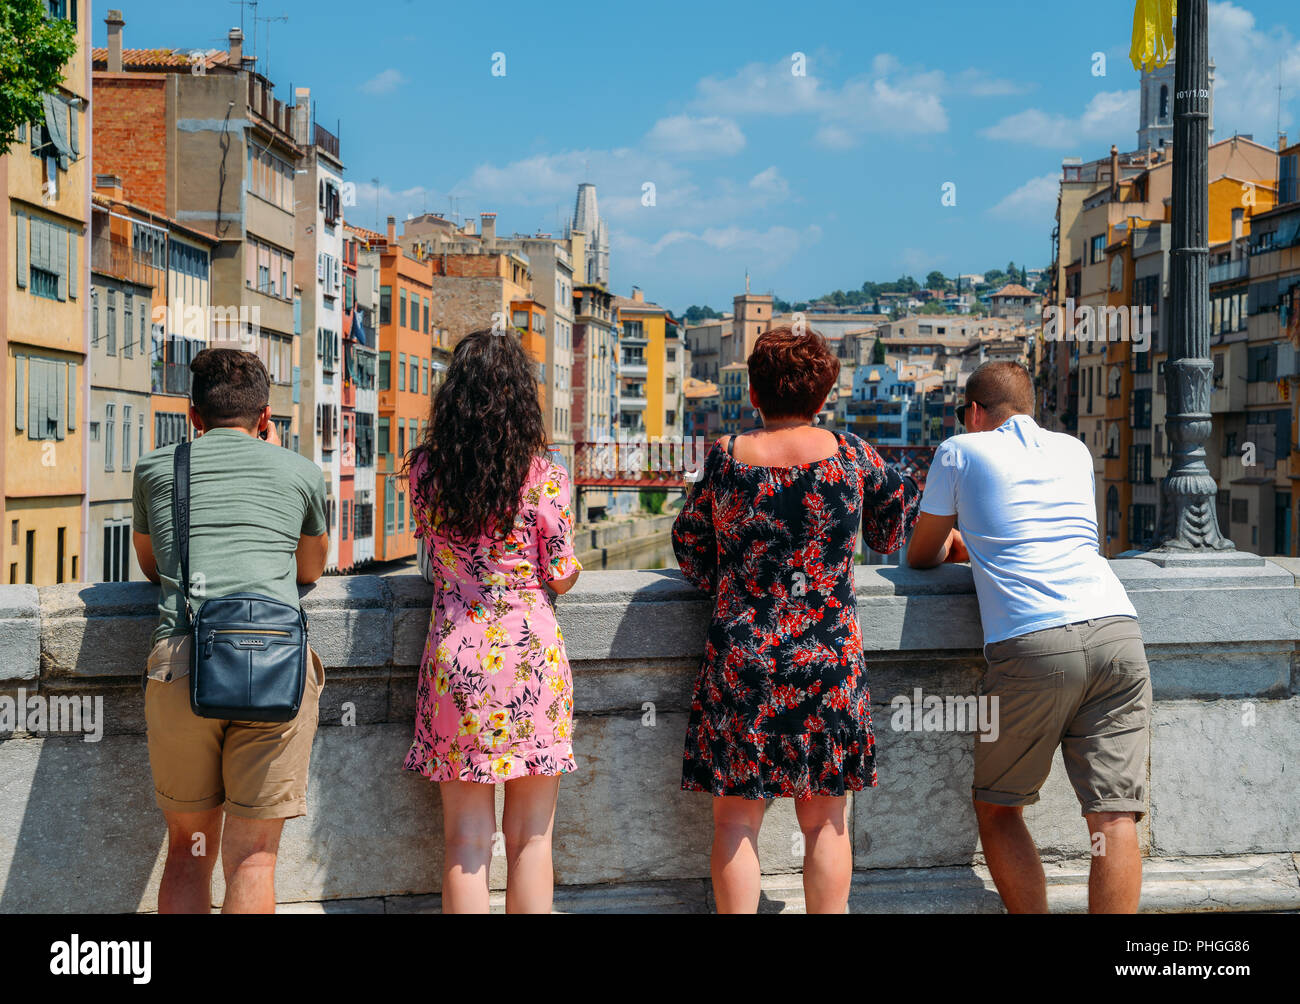 girona-spain-july-9-2018-family-of-tourists-overlook-colorful-red-and-yellow-houses-and-bridge-river-onyar-girona-is-a-famous-tourist-spot-PHGG86.jpg